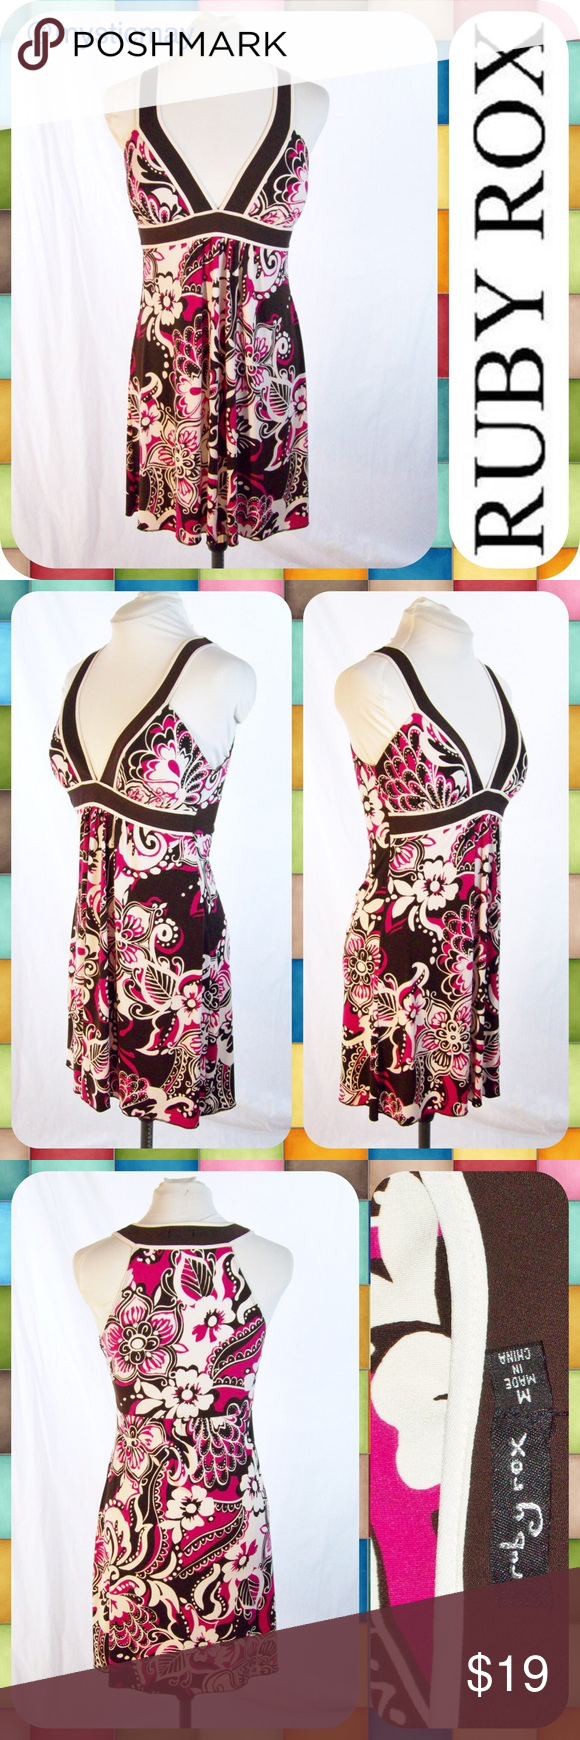 """RUBY ROX Magenta Floral Empire Waist Dress Size M Sleeveless jersey dress with a vibrant magenta floral print and plunging v-neckline. Empire waist with chocolate brown trim and lightly padded bust. Not lined. Juniors Size Medium (M) for ladies size 6/8. Measures 16"""" across the chest and 33"""" in length. A cute dress! Ruby Rox Dresses Midi"""